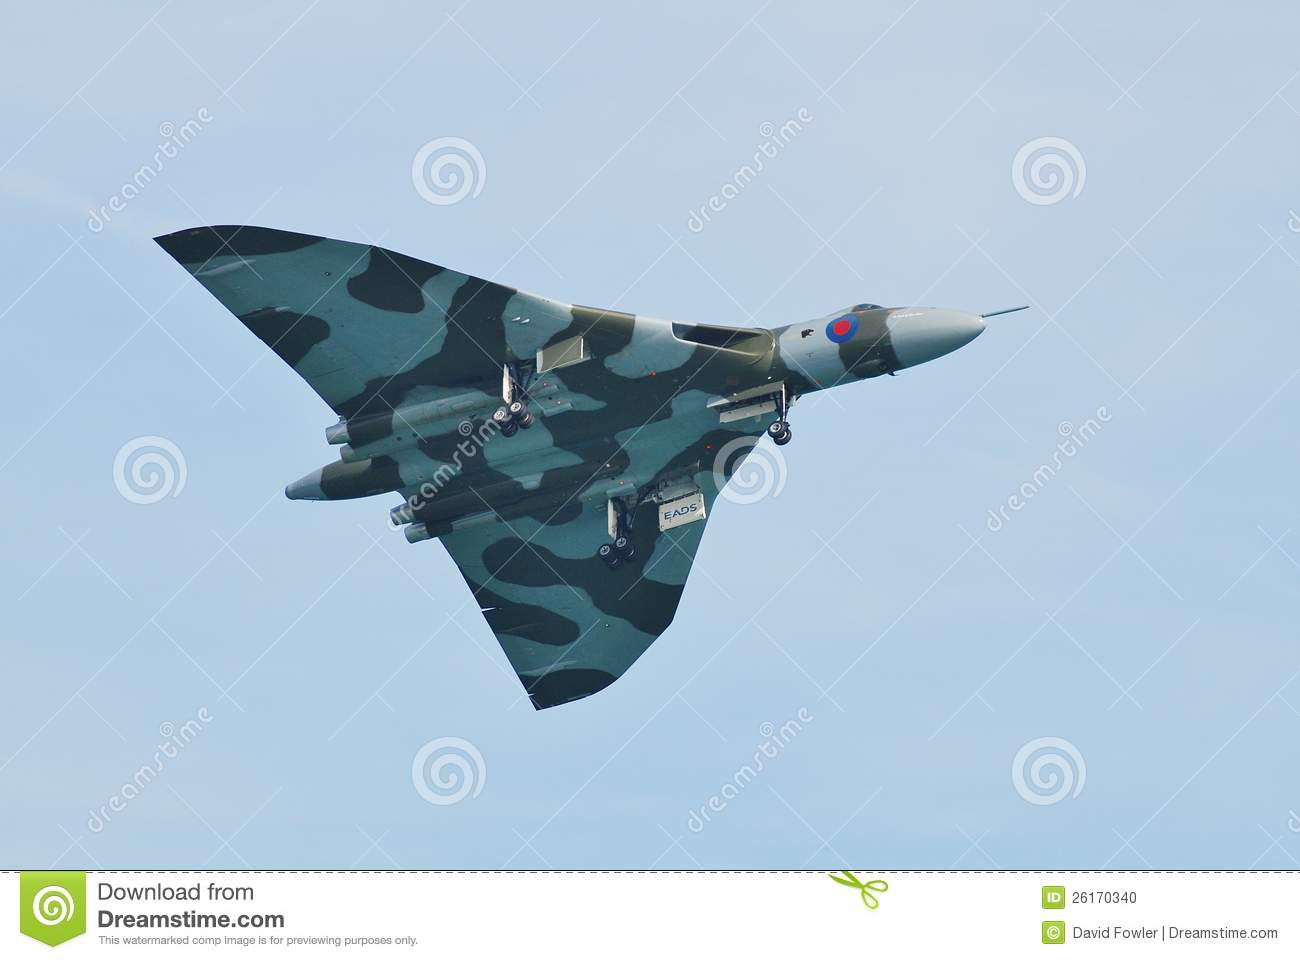 Eastbourne Air Show >> Avro Vulcan B.Mk2 Bomber Aircraft Editorial Image - Image of east, flight: 26170340